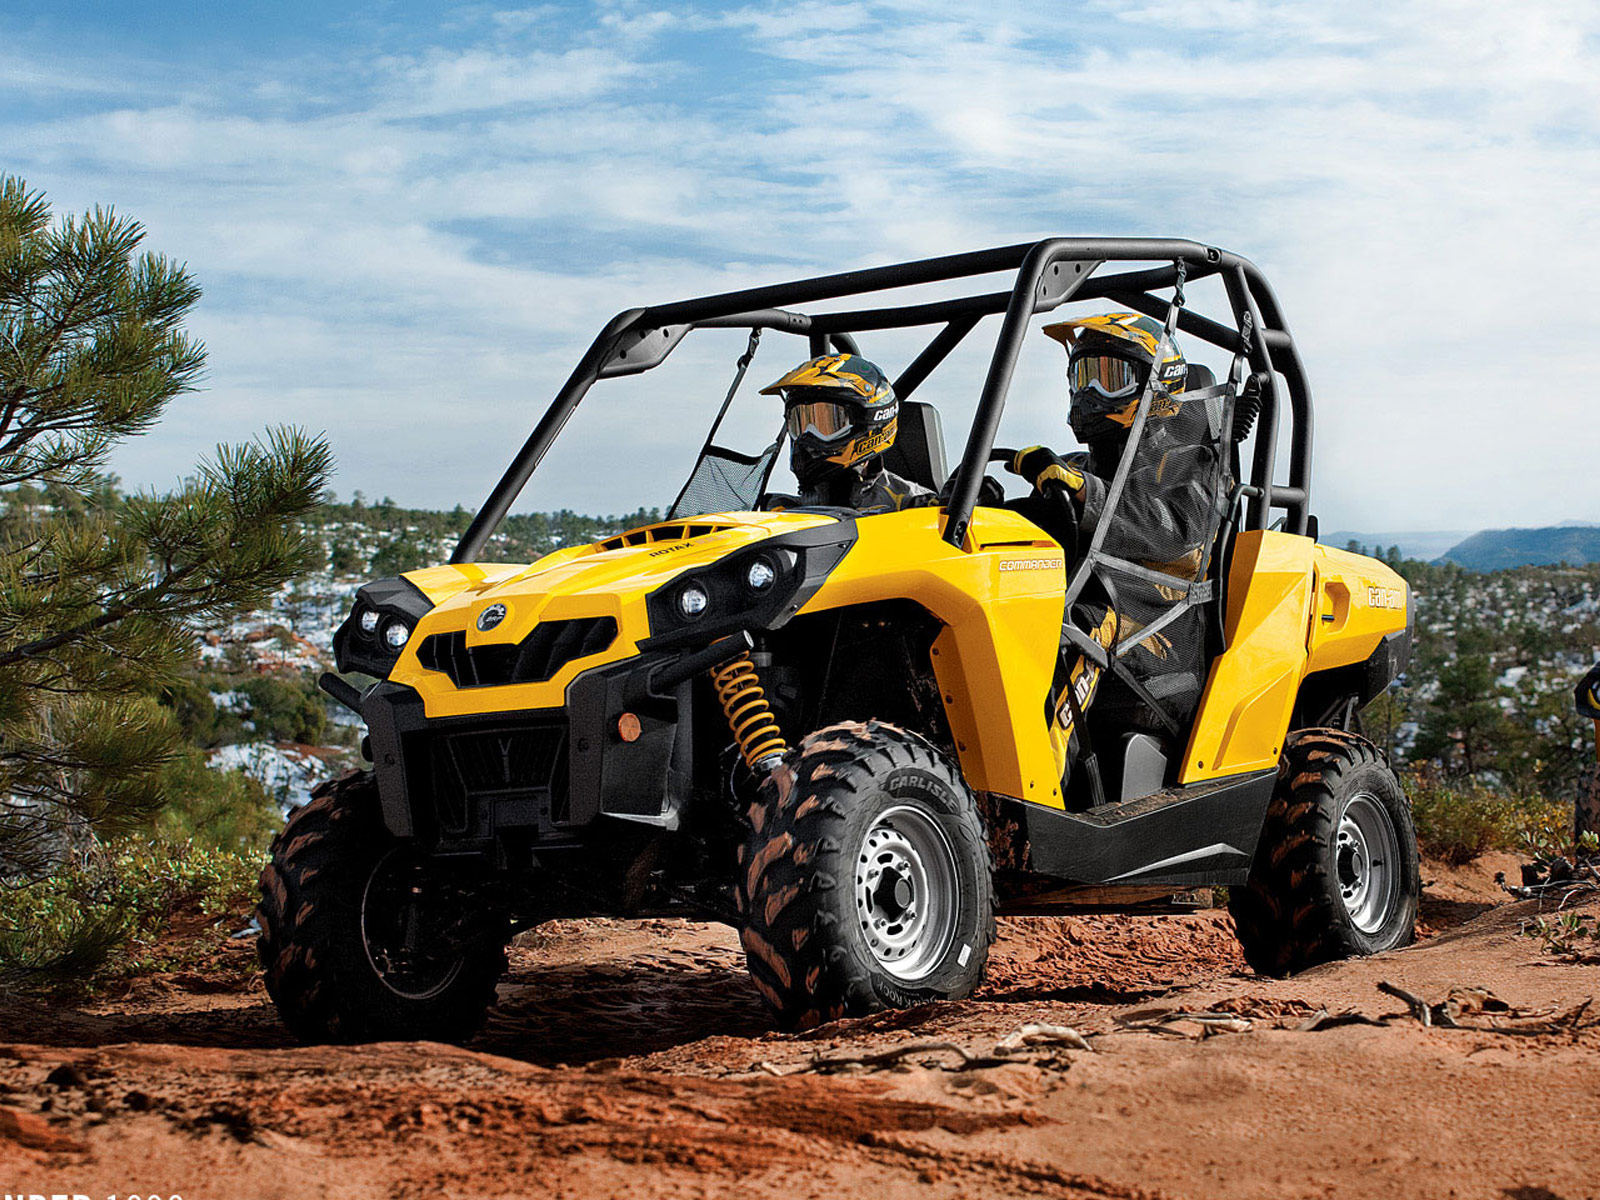 2012 Can-Am Commander 1000 ATV pictures 4